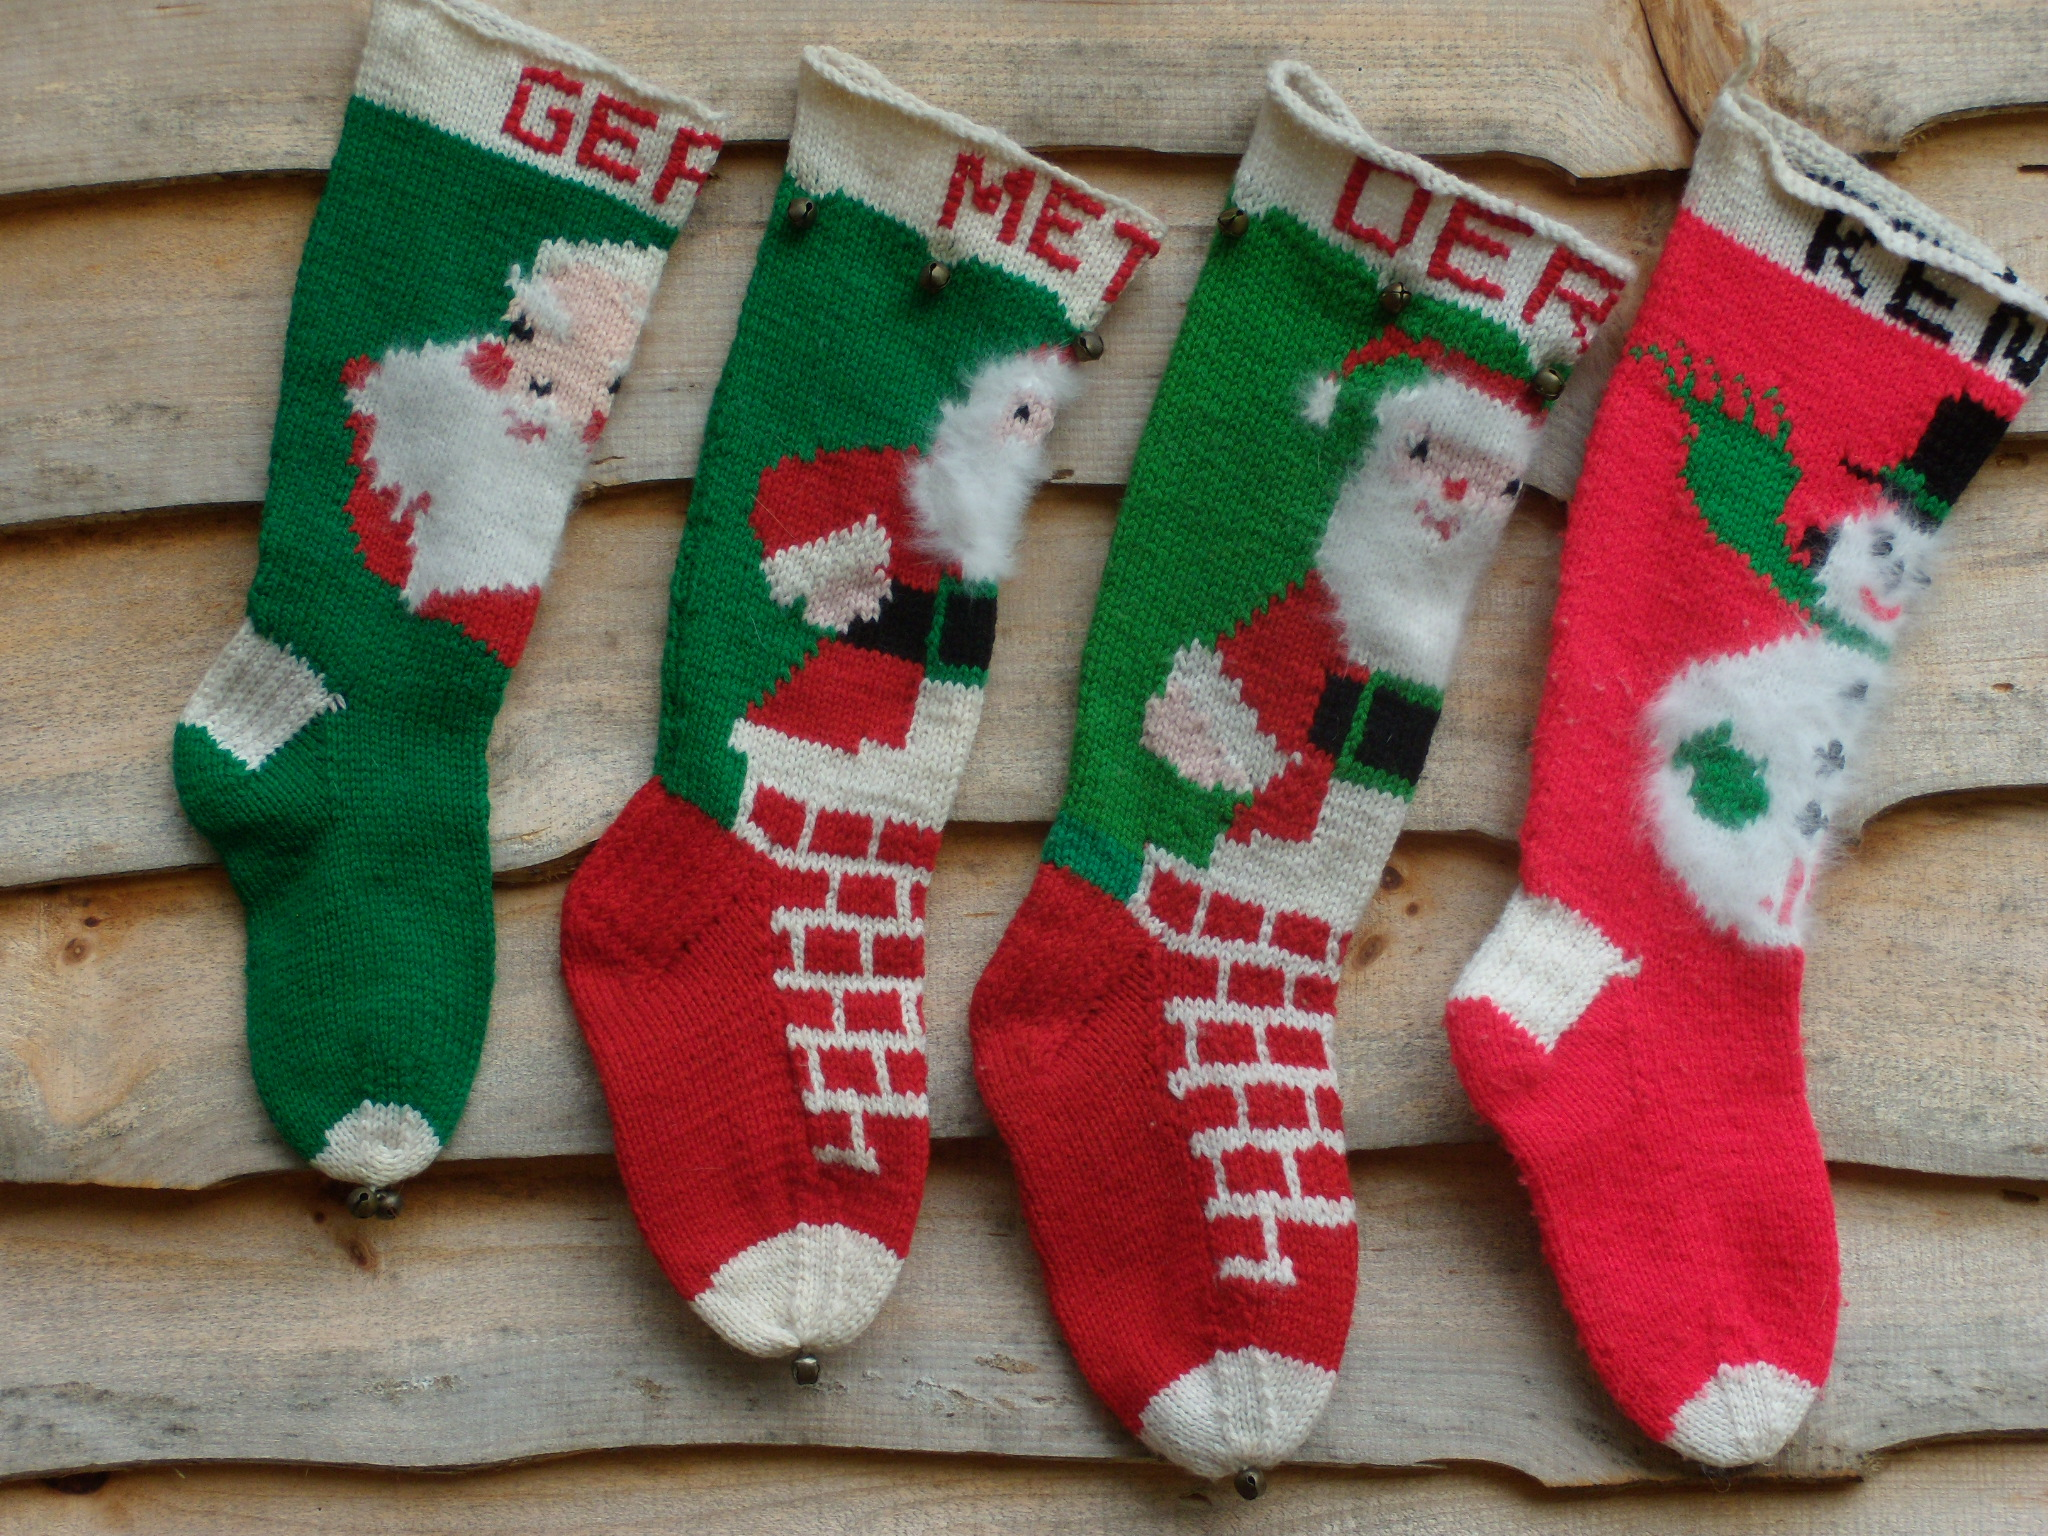 Who Made Your Christmas Stockings? Halcyon Yarn Blog ... Halcyon Yarn